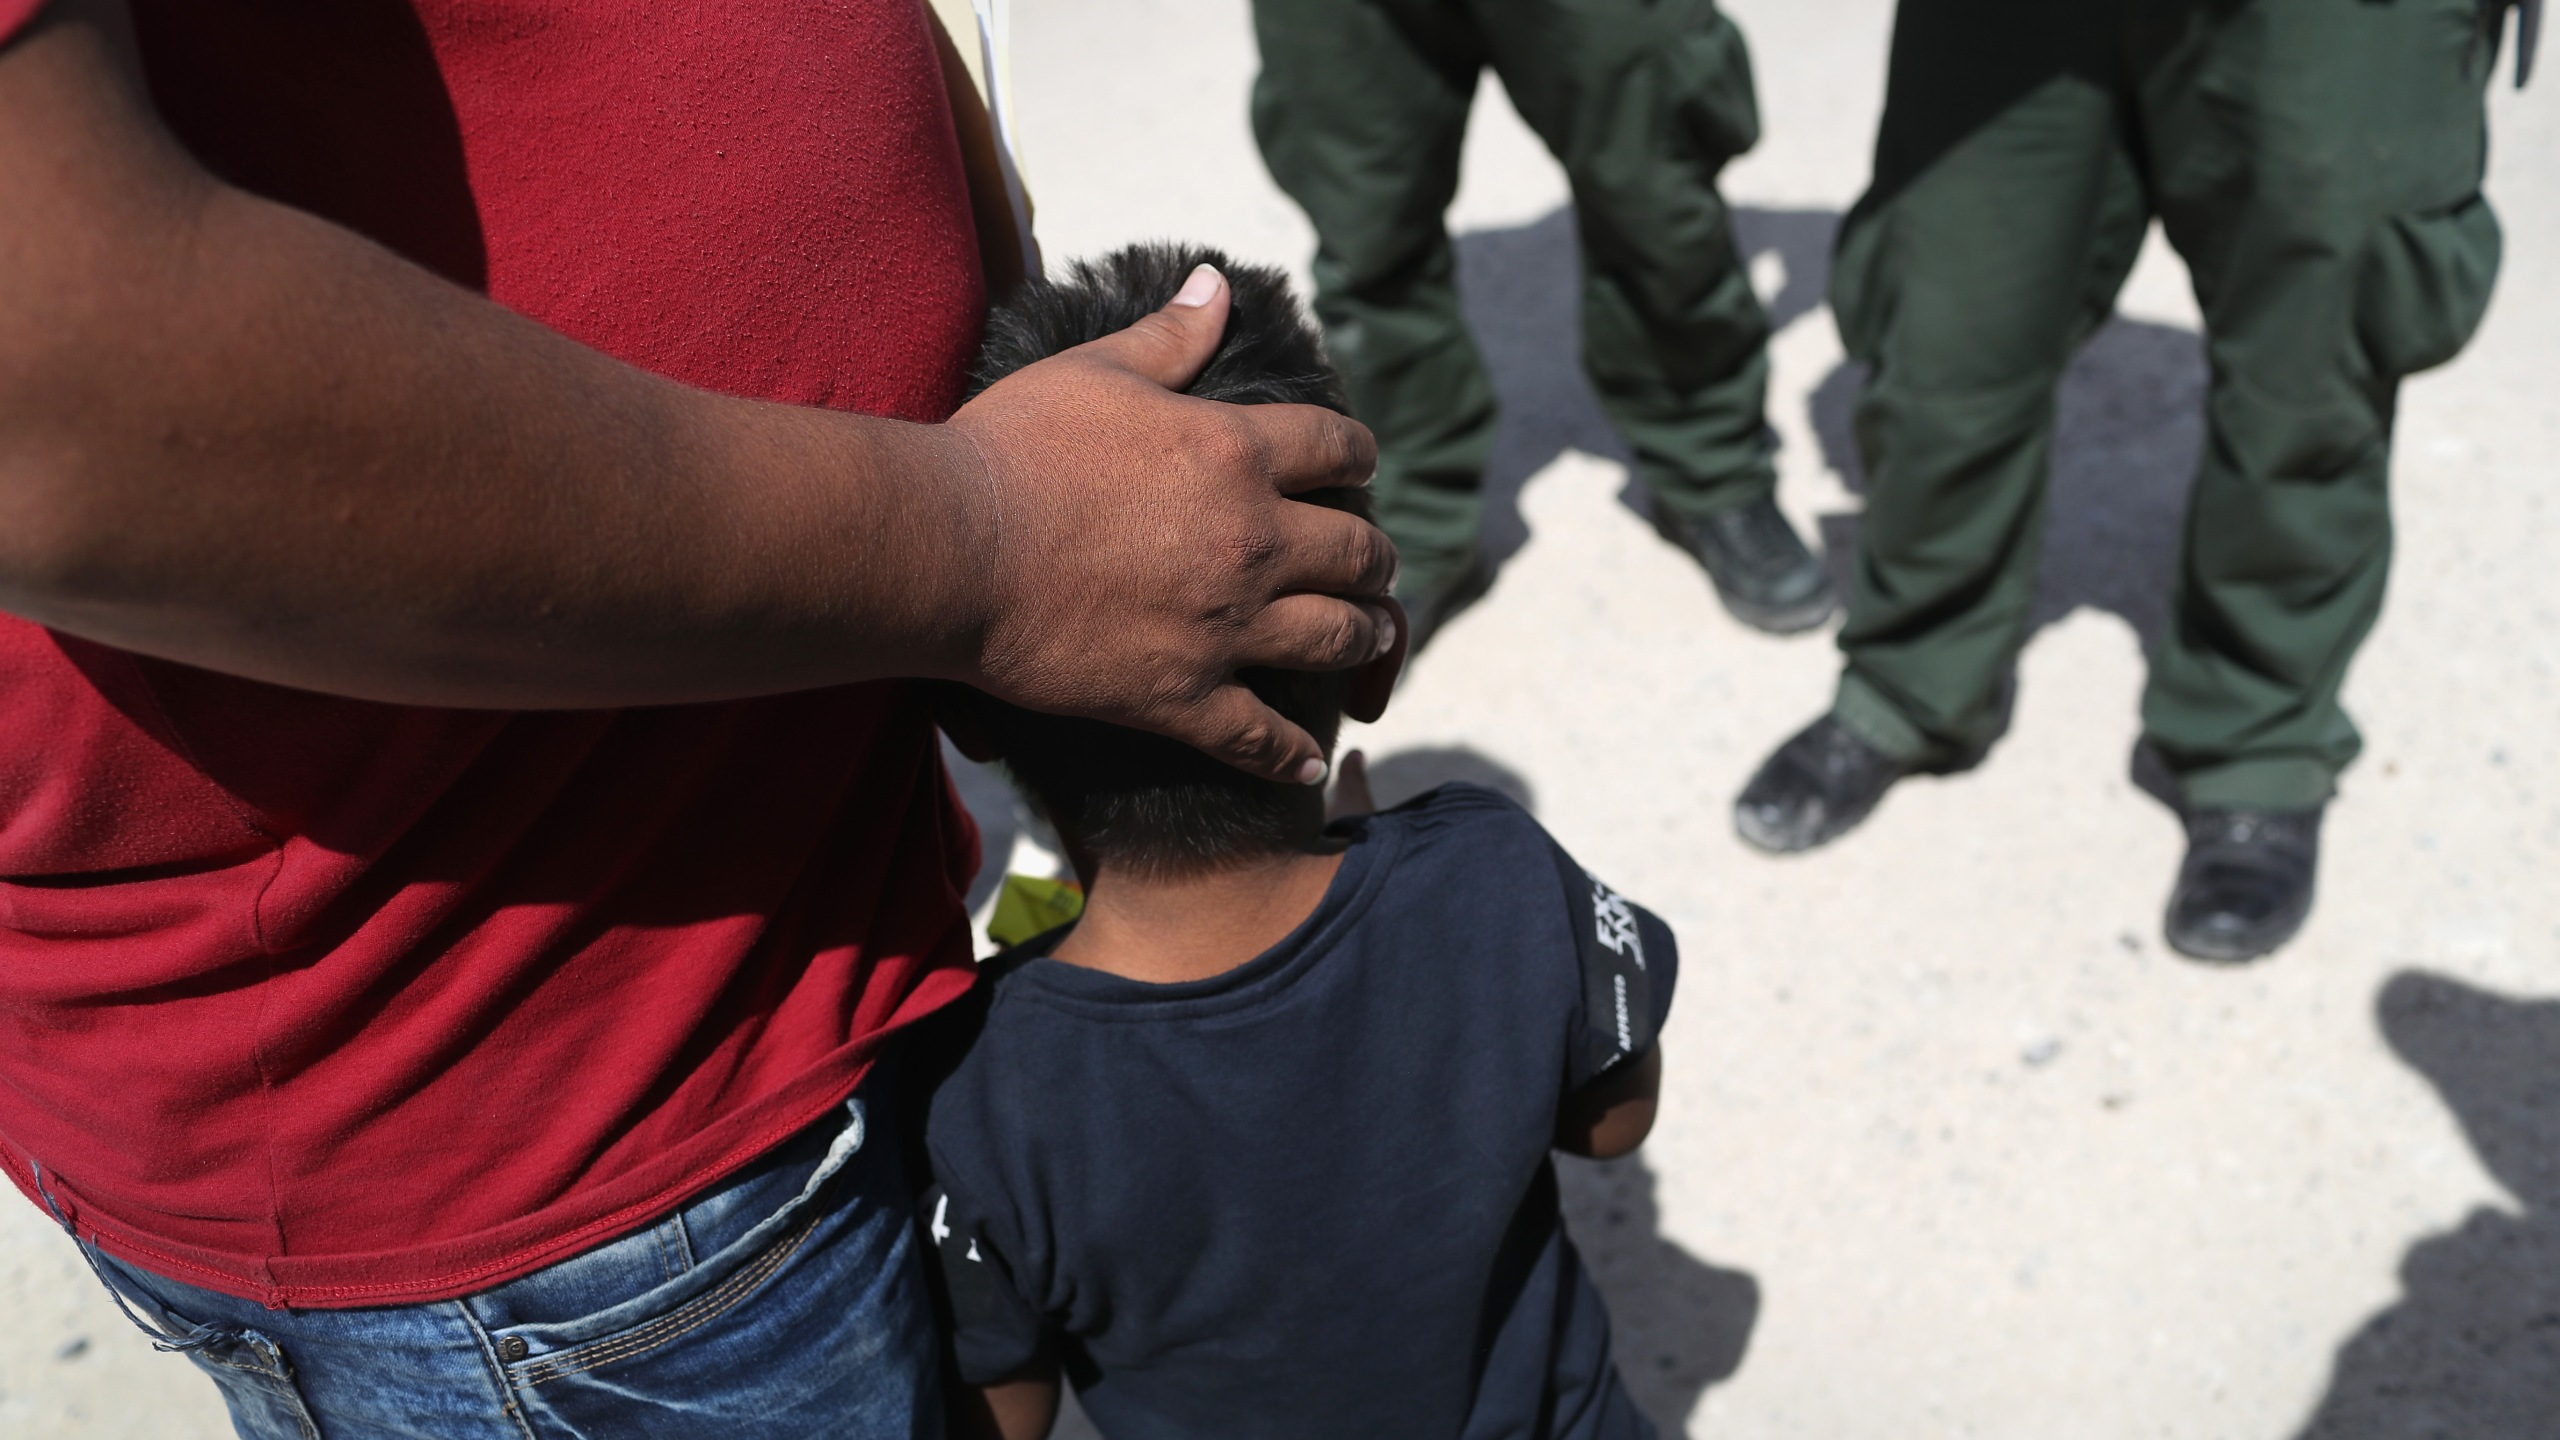 Border Patrol agents take a father and son from Honduras into custody near the U.S.-Mexico border on June 12, 2018, near Mission, Texas. (Credit: John Moore / Getty Images)